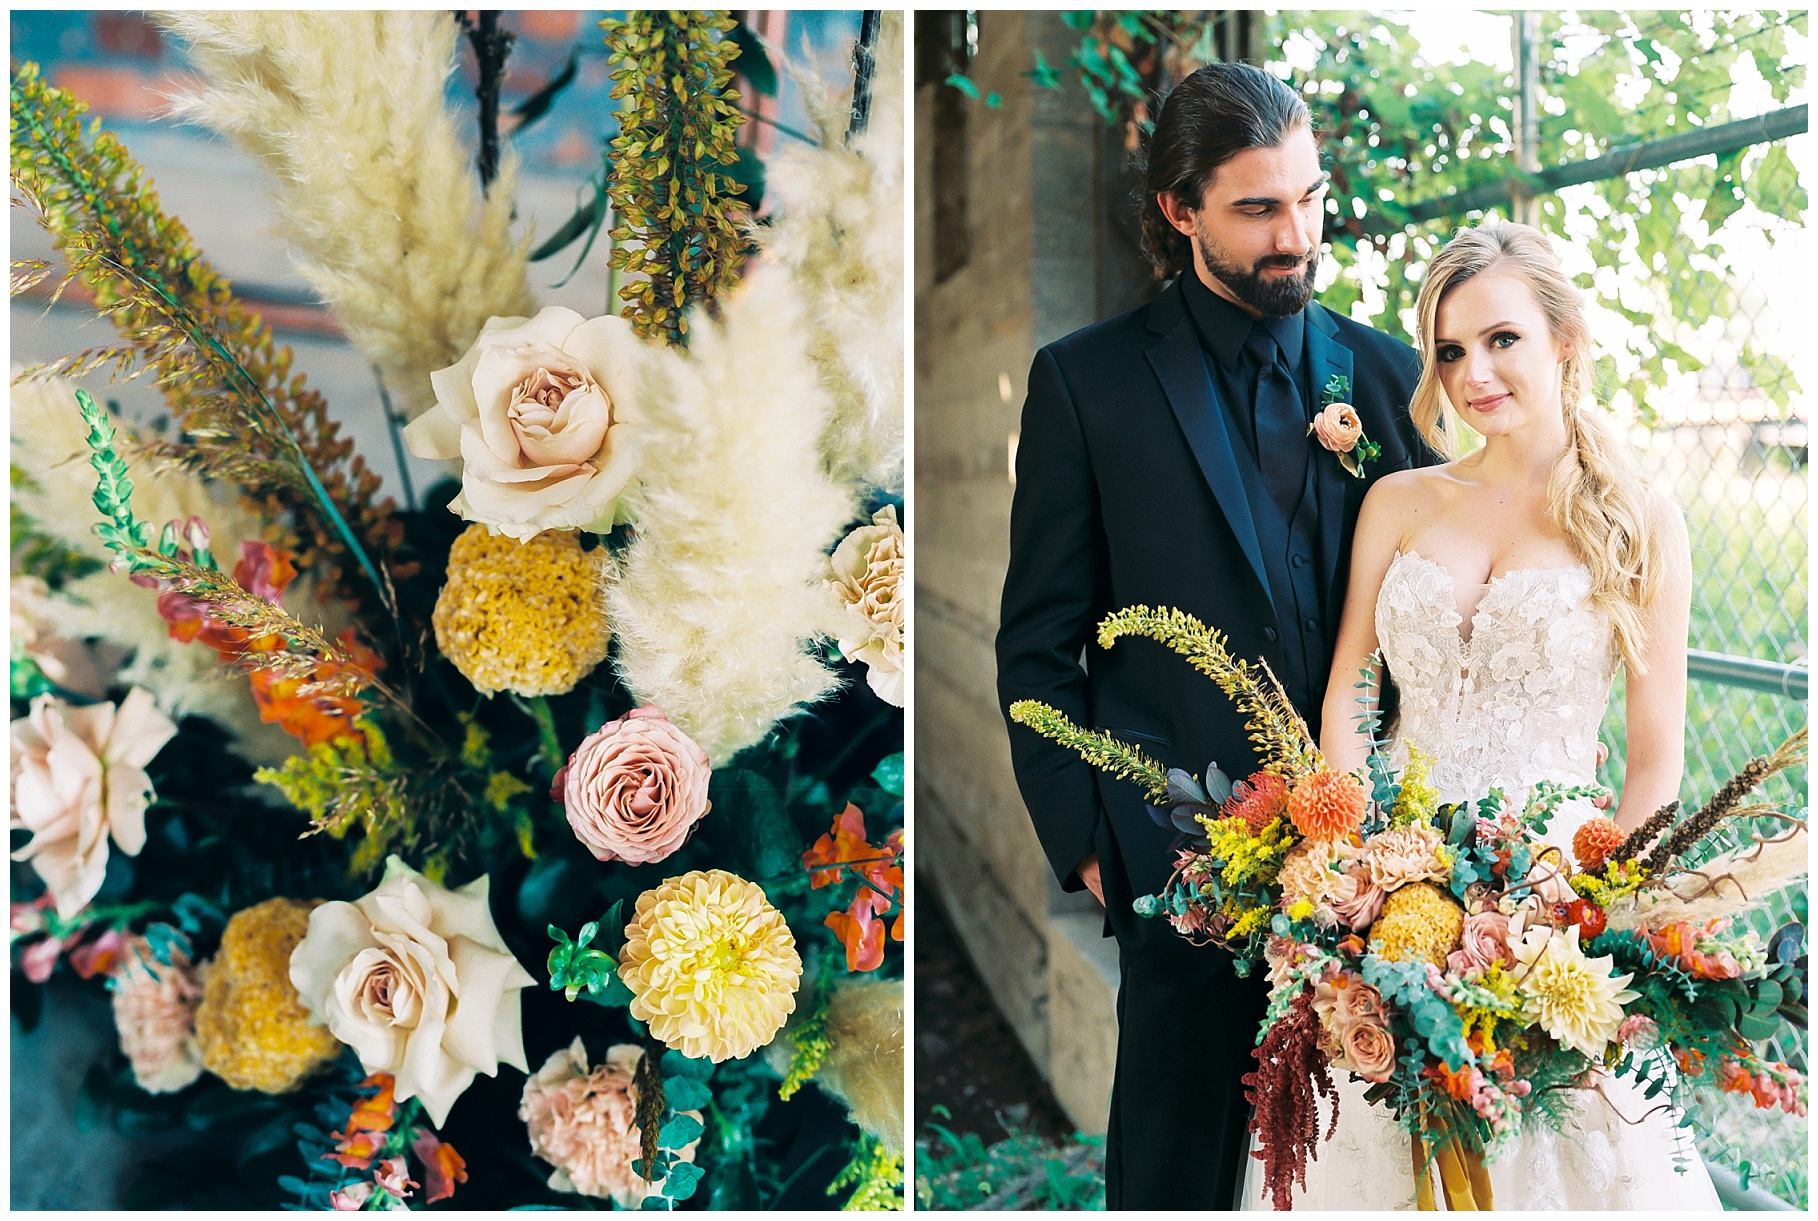 Urban Romance Wedding with Copper Accents at The Millbottom by Kelsi Kliethermes Photography Best Columbia Missouri Wedding Photographer_0036.jpg